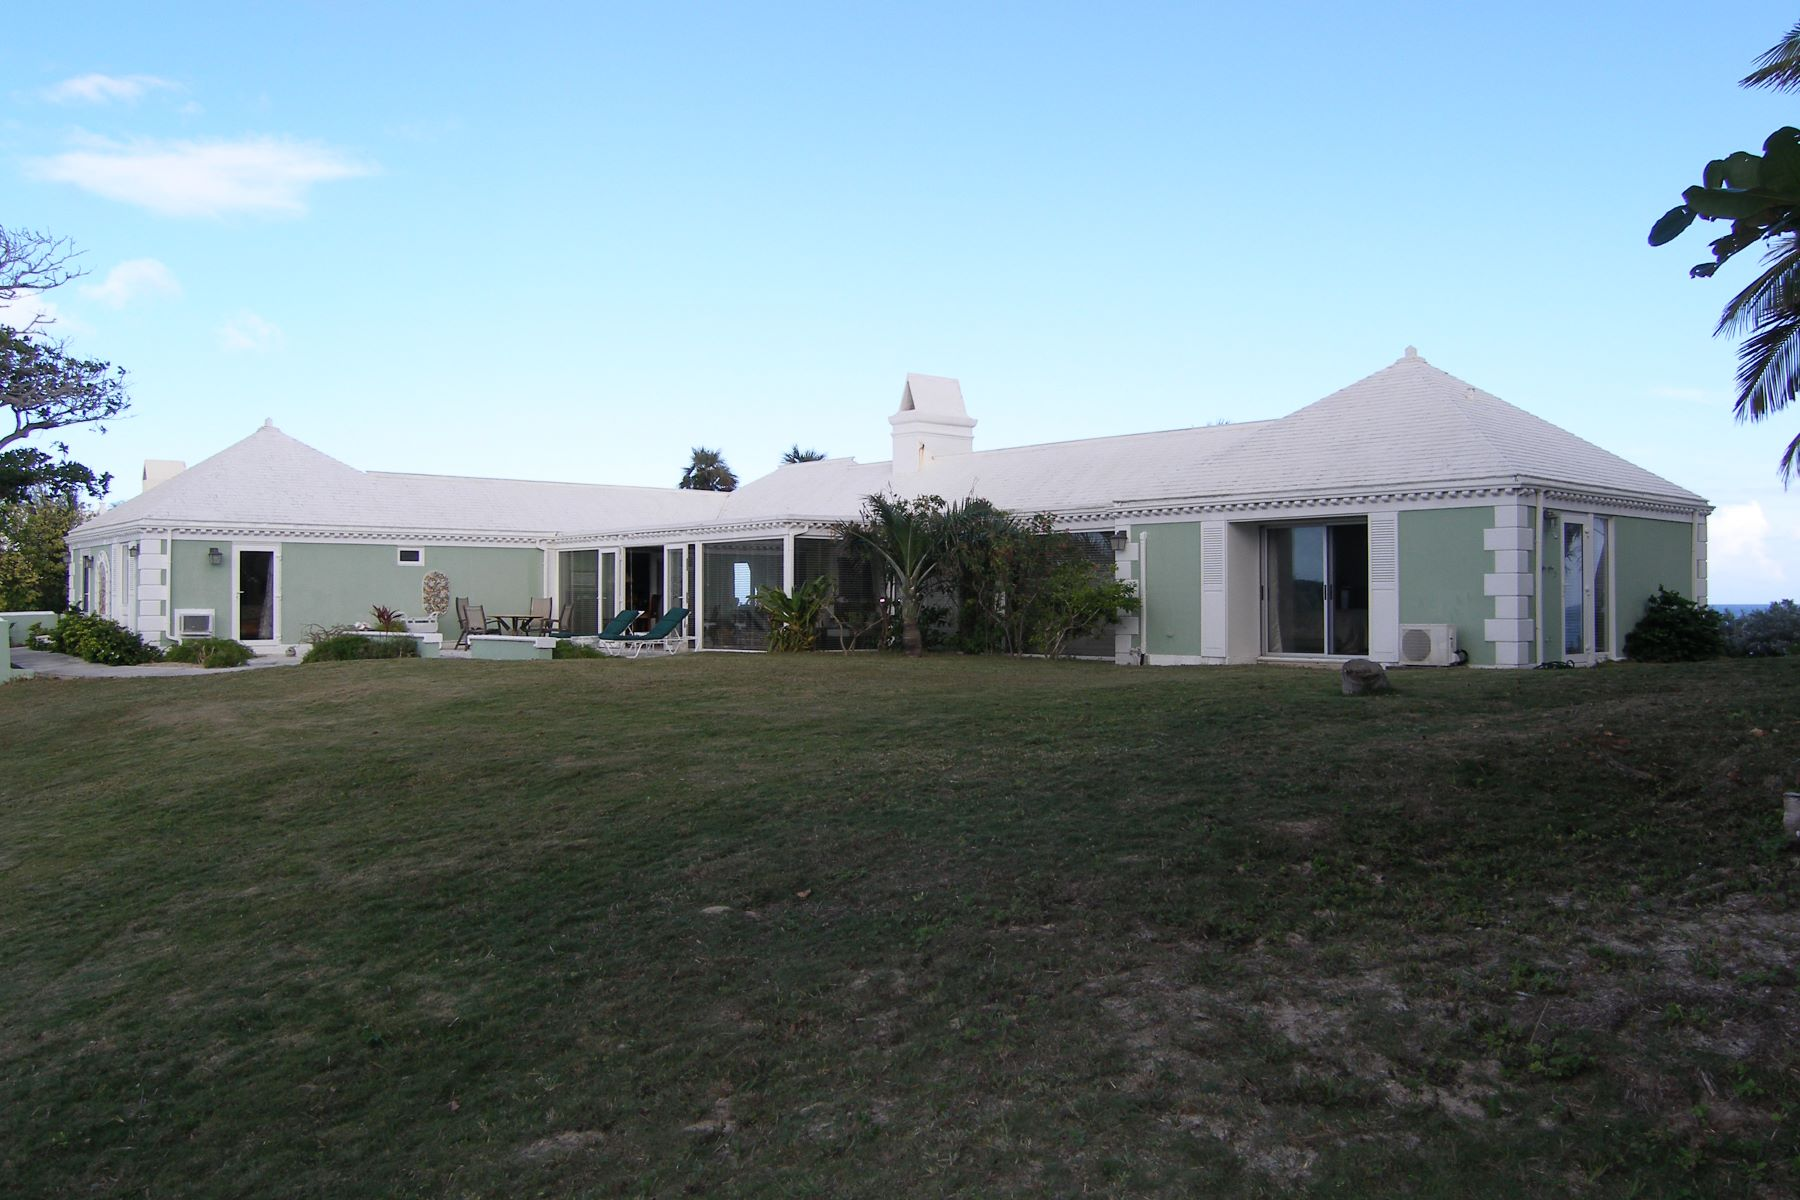 Single Family Home for Sale at Timeless Appeal of Cotton Bay Cotton Bay, Rock Sound, Eleuthera Bahamas